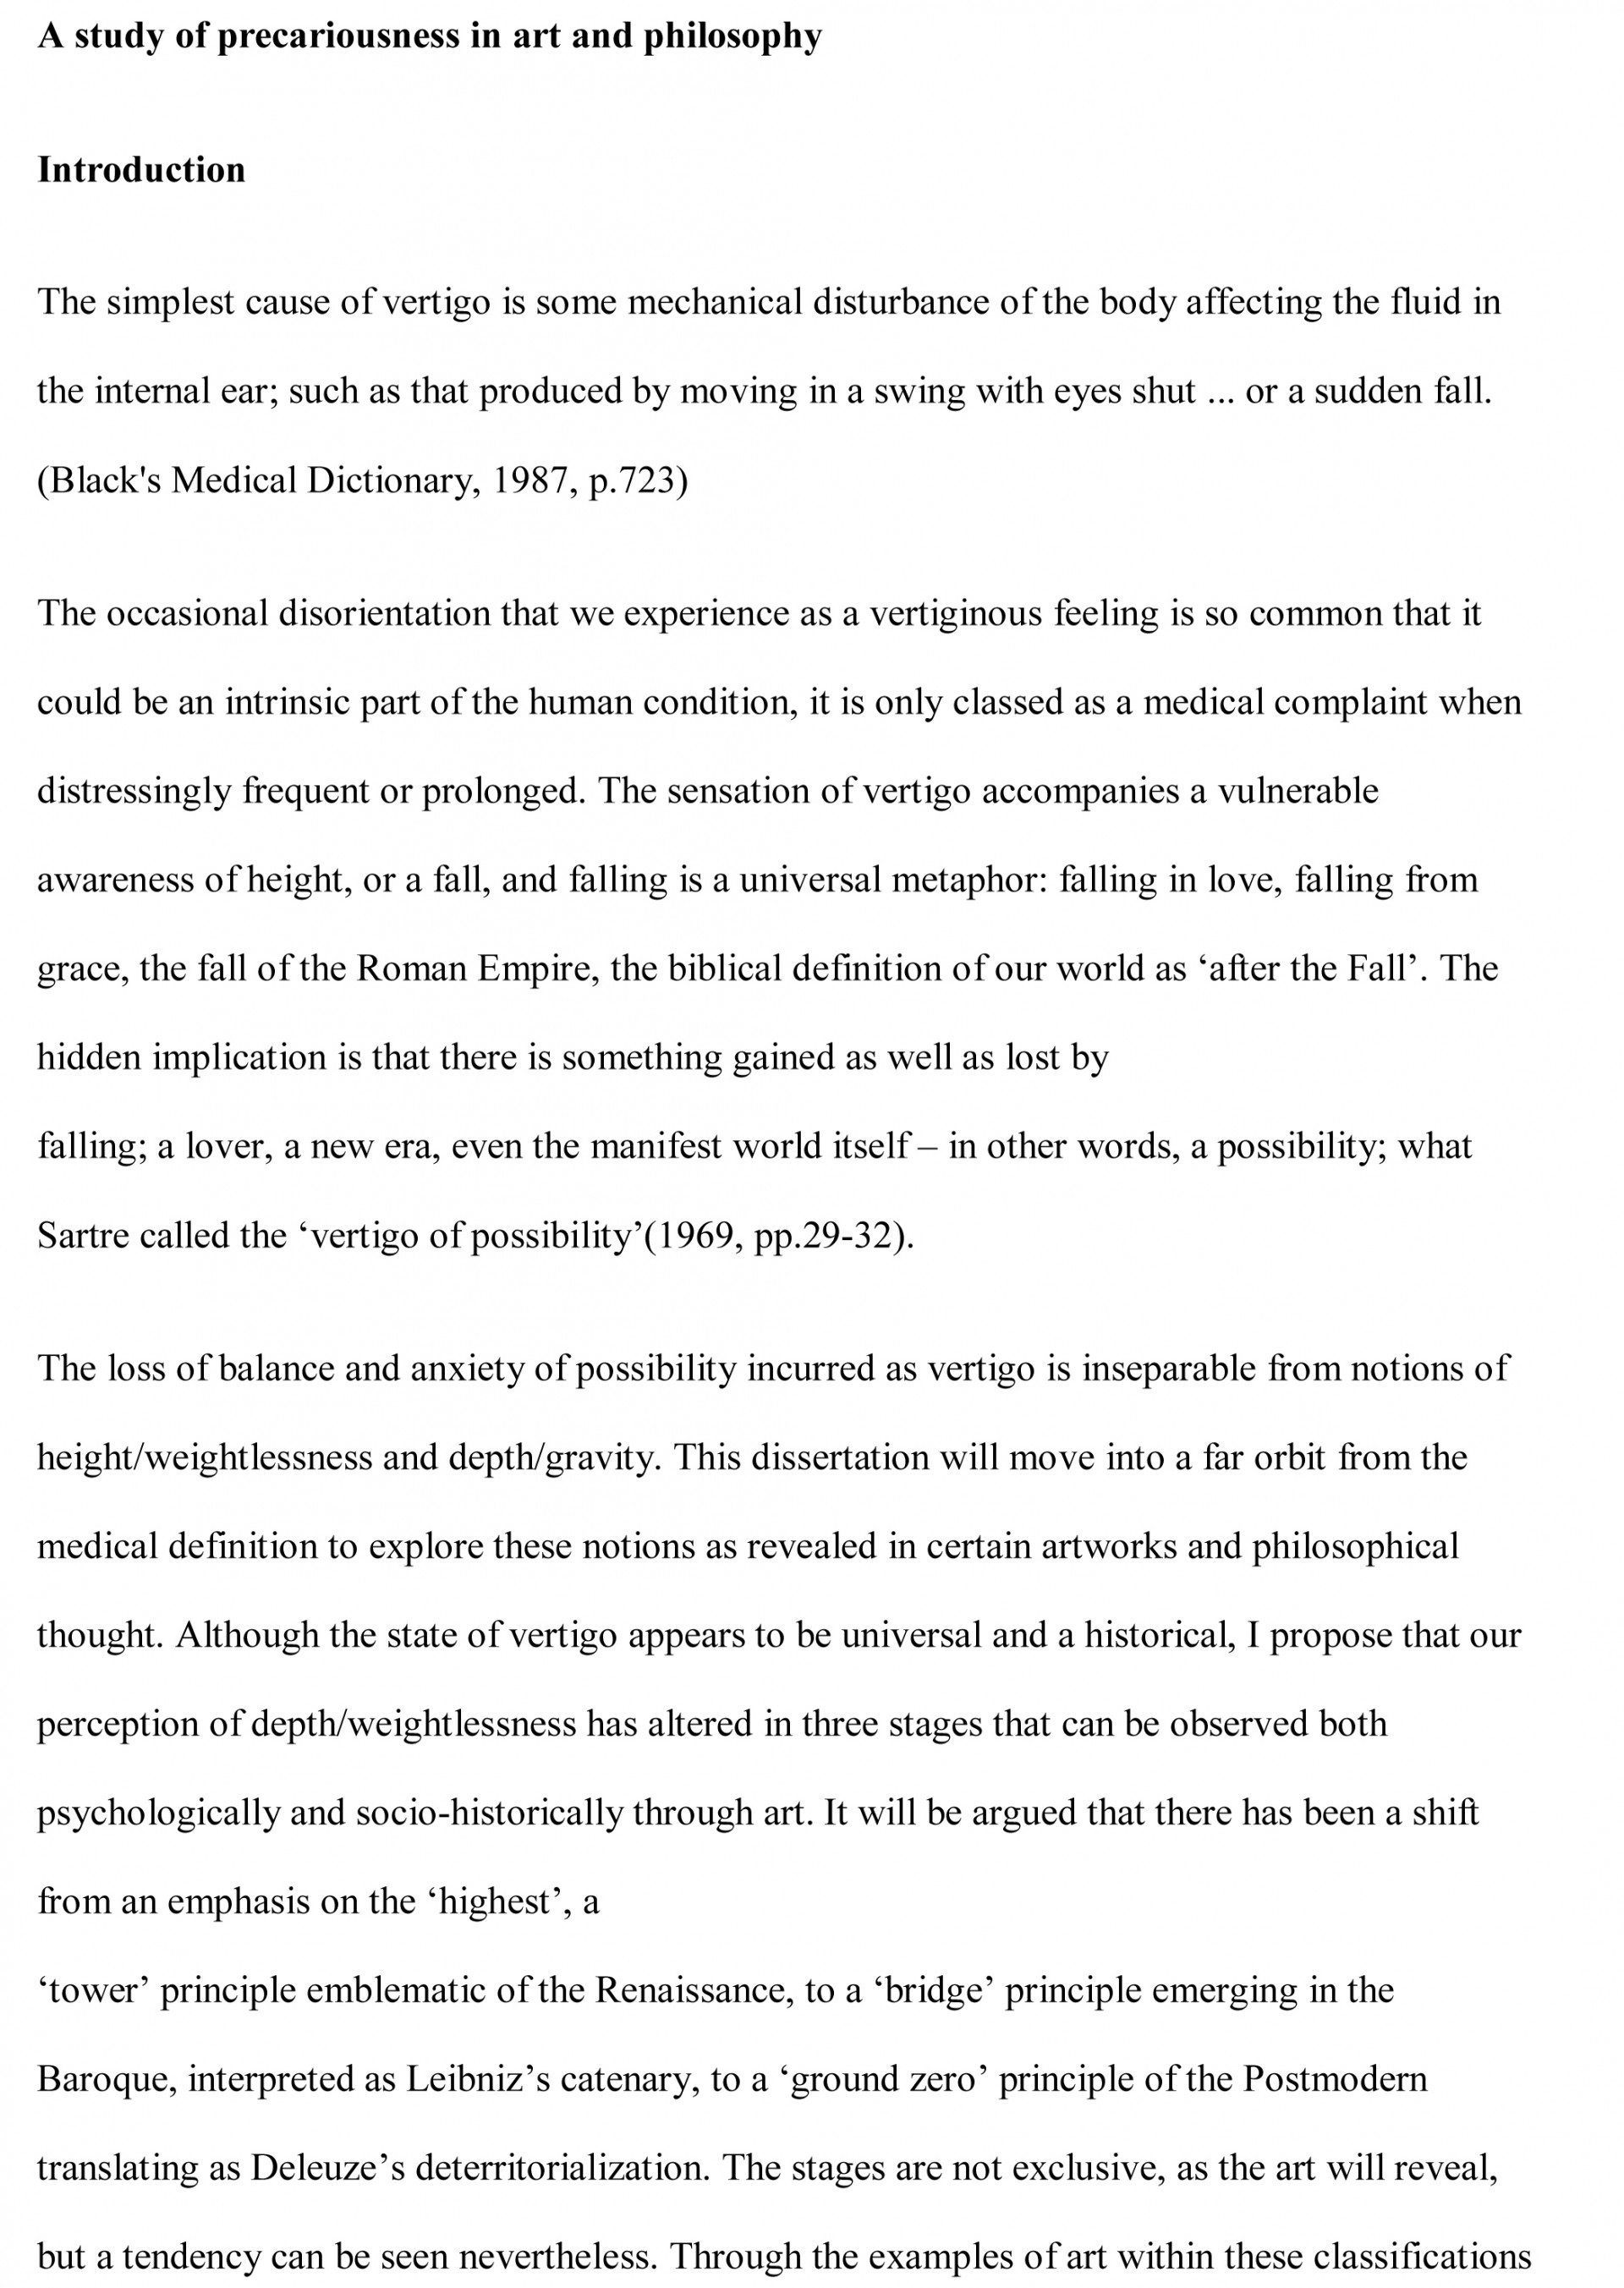 005 Essay Example History Art Coursework Free Beautiful Introduction Pdf A Level 1920